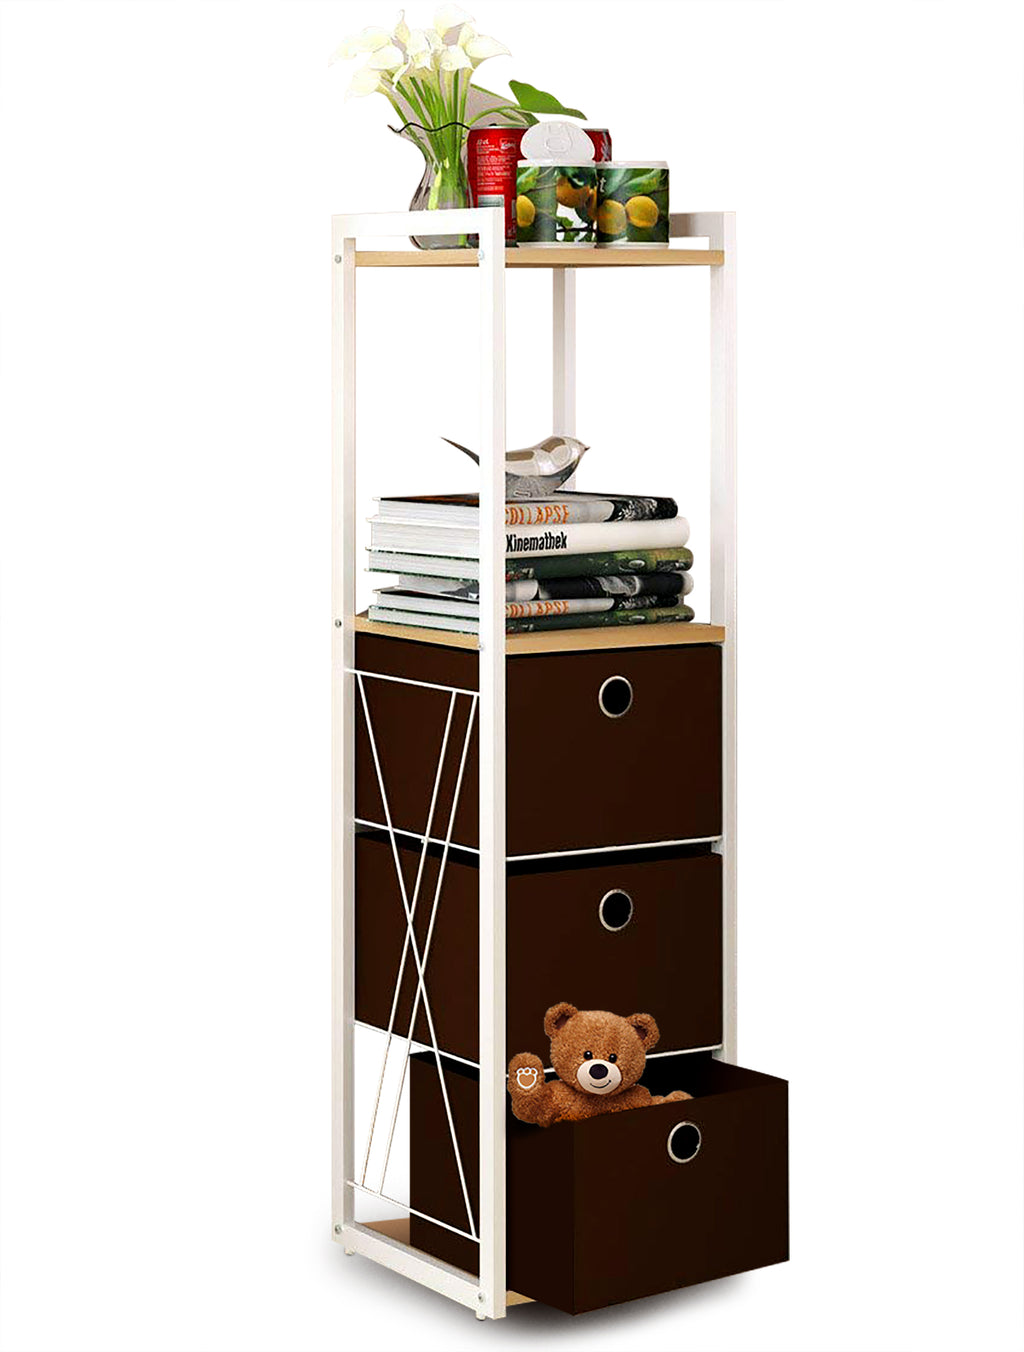 5-Tier Storage Organizer Standing Tower Shelf Multipurpose Storage Rack with 3 Removeable Bins